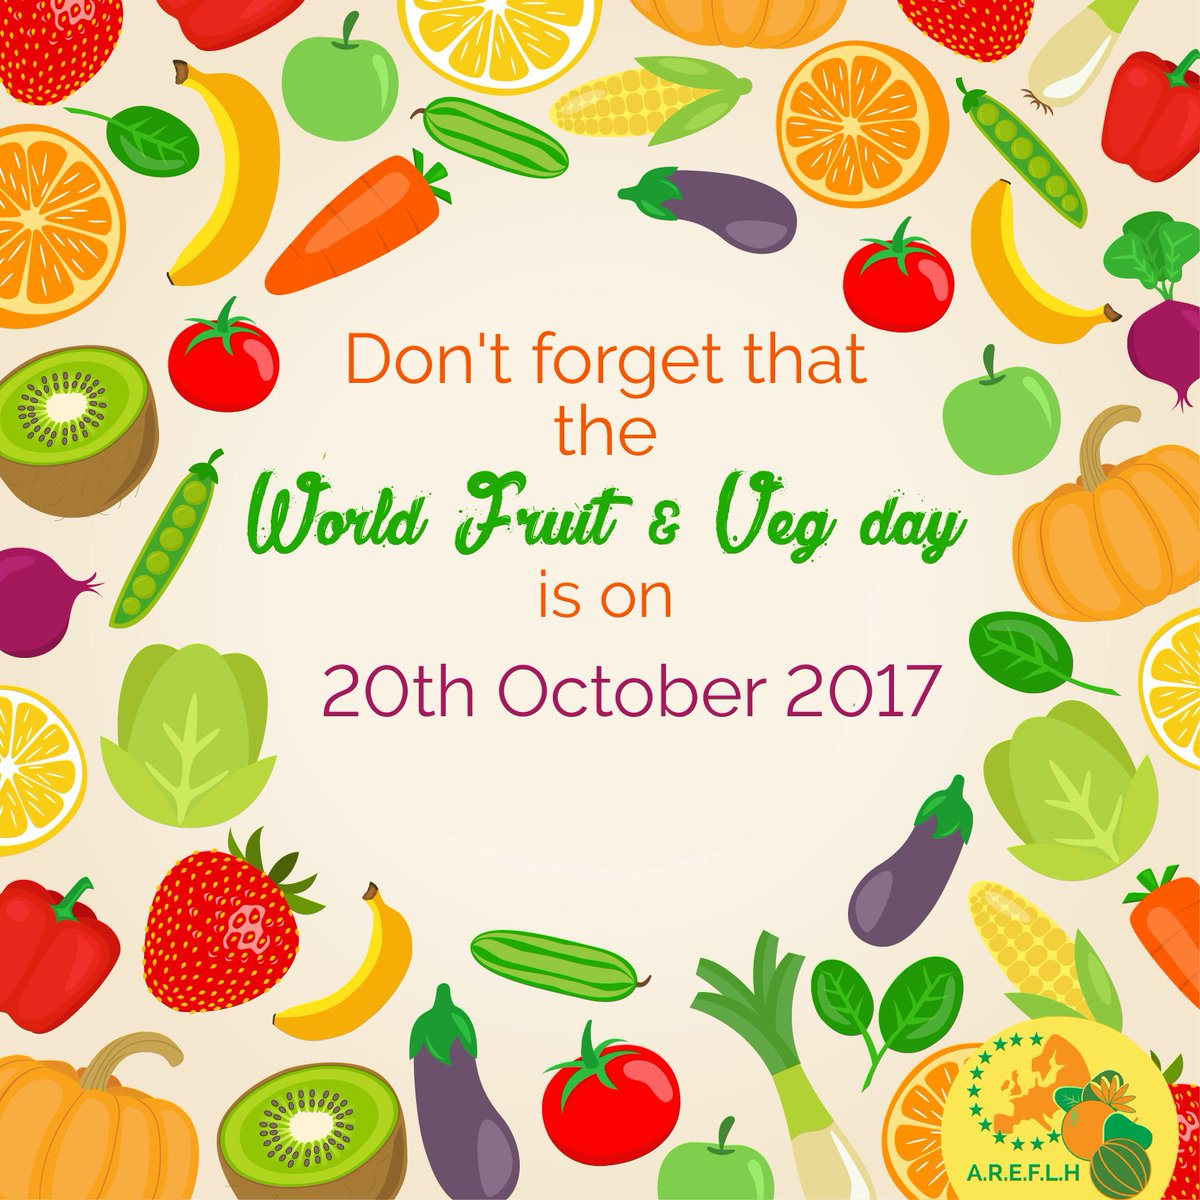 The World #Fruit and #Vegetable day is on 20th October this year.  Let&#39;s pass the word, celebrate and make an effort to consume more. They are packed with vitamins, minerals, soft fibers and antioxydants. All good for your body and your brain.  #FruitVeg4You<br>http://pic.twitter.com/lJUMPsa8sE